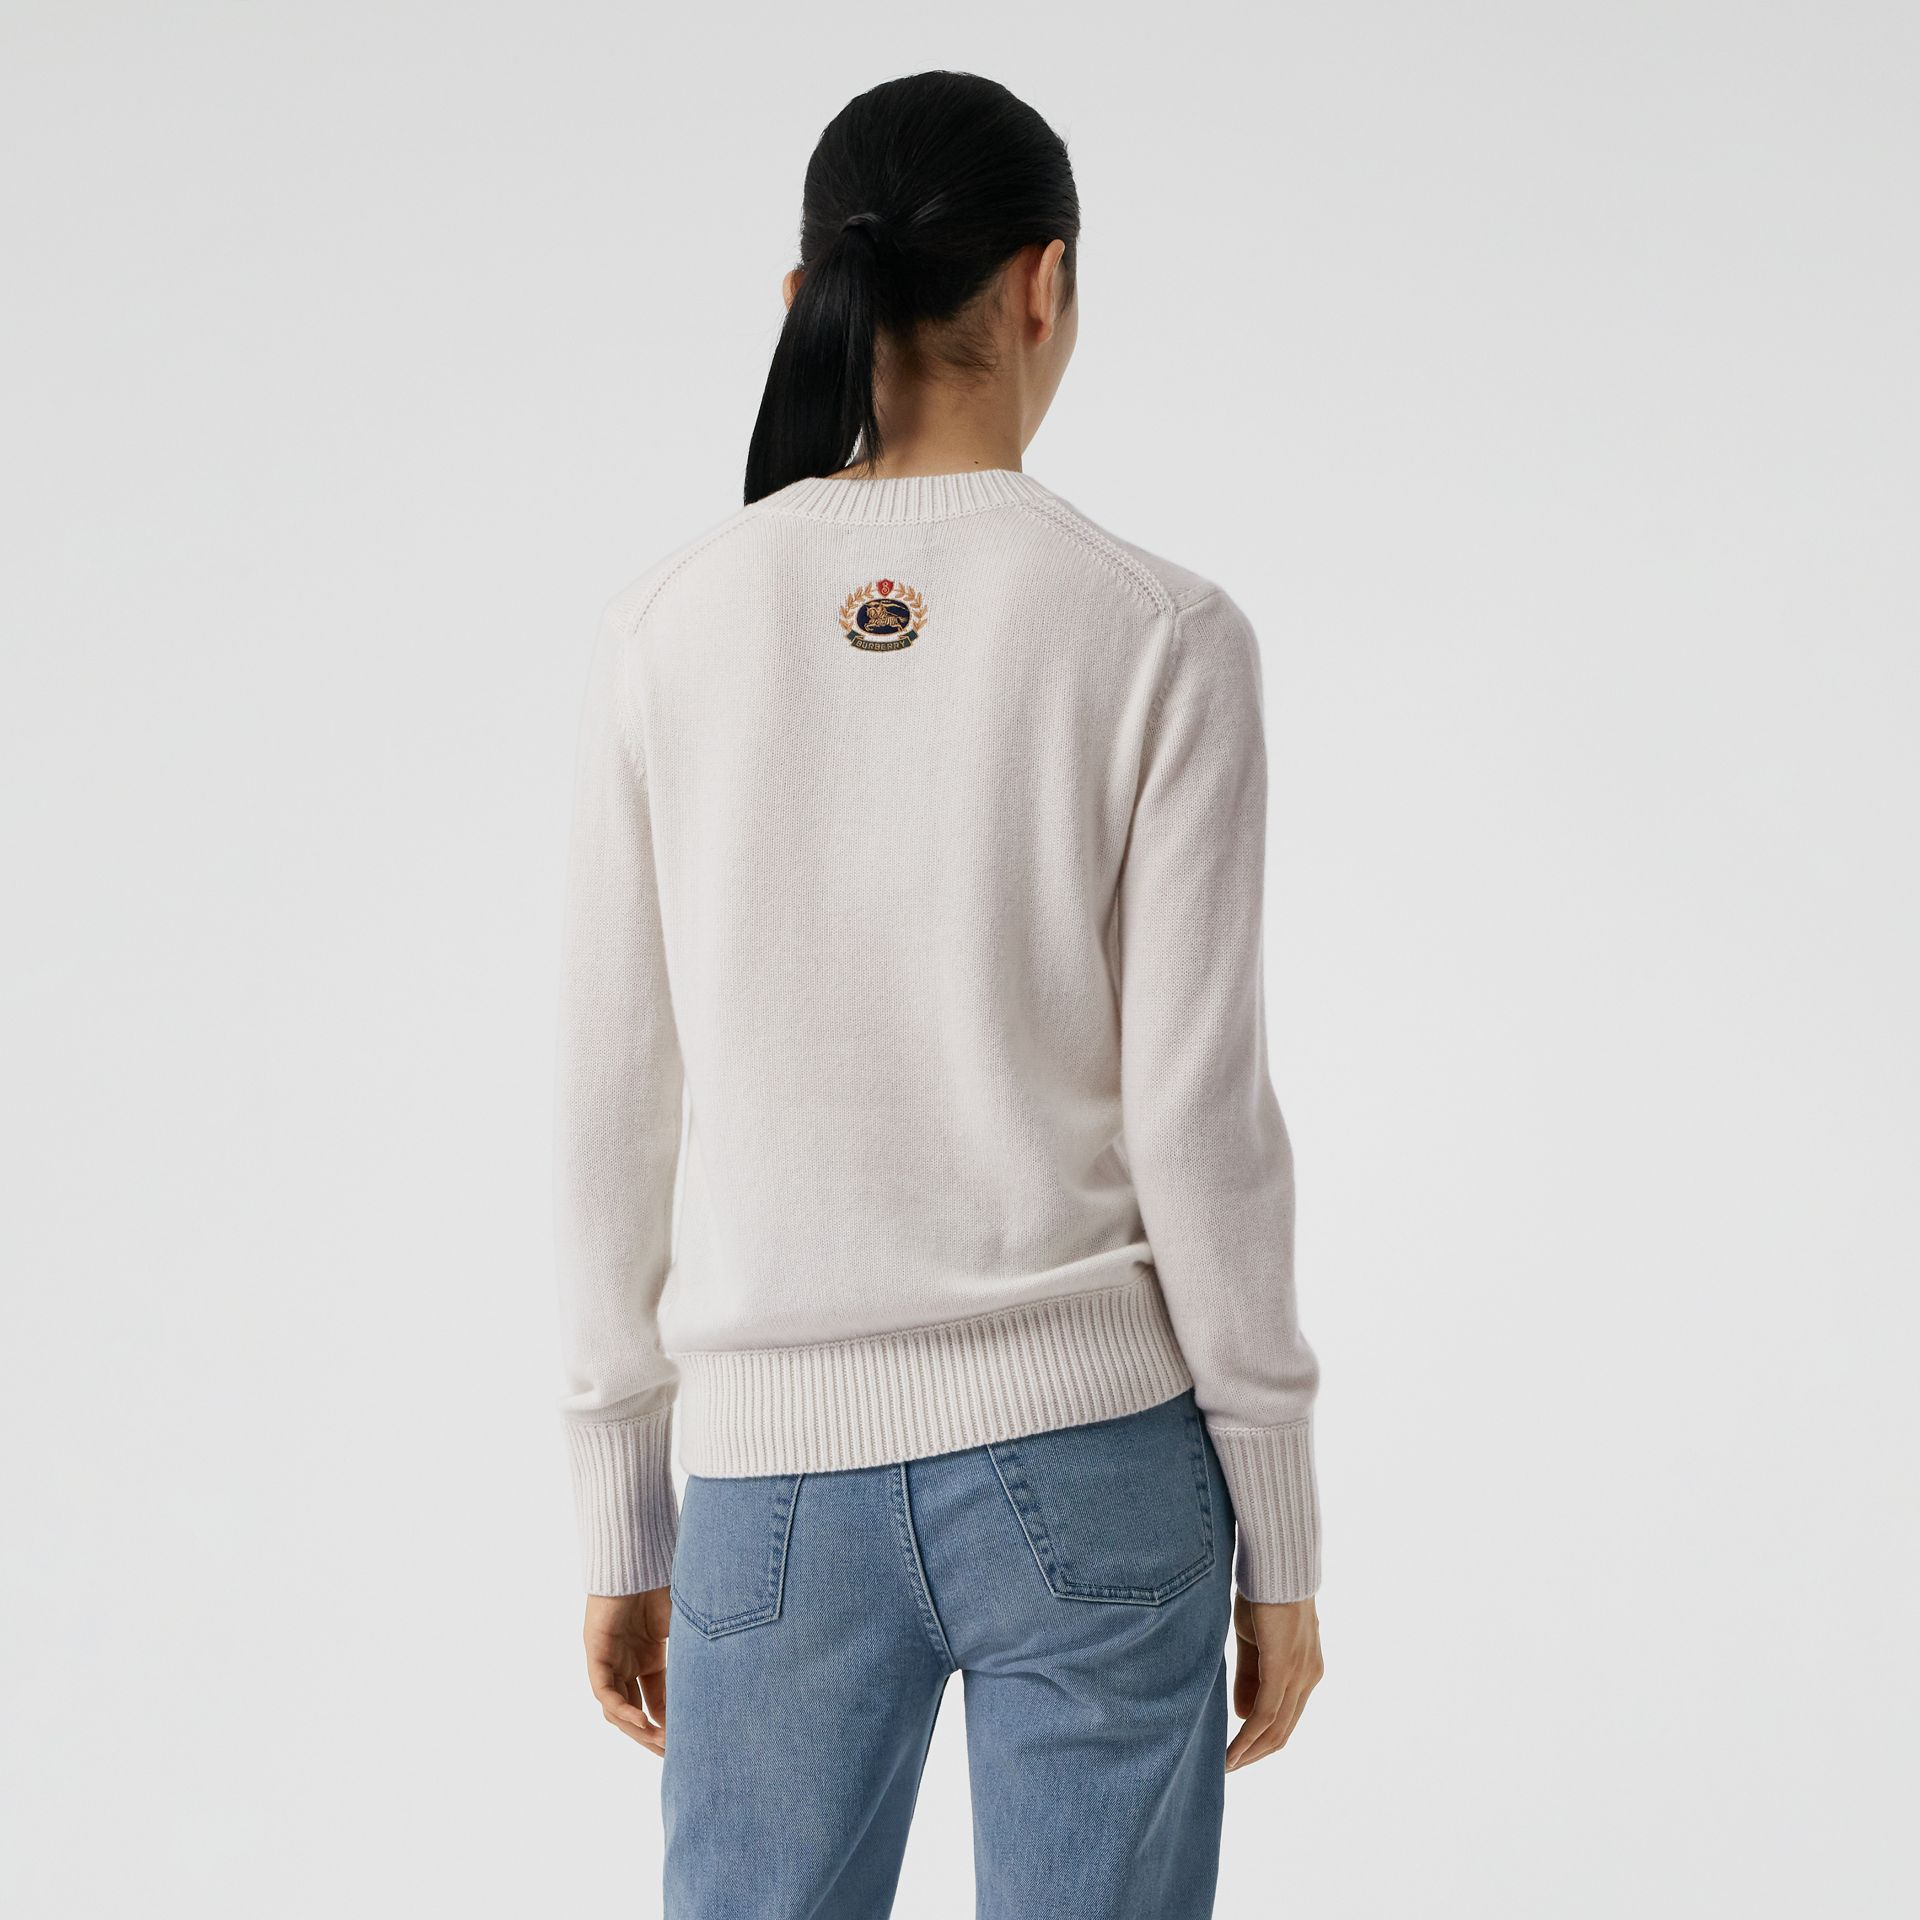 Archive Logo Appliqué Cashmere Sweater in White - Women | Burberry Australia - gallery image 2